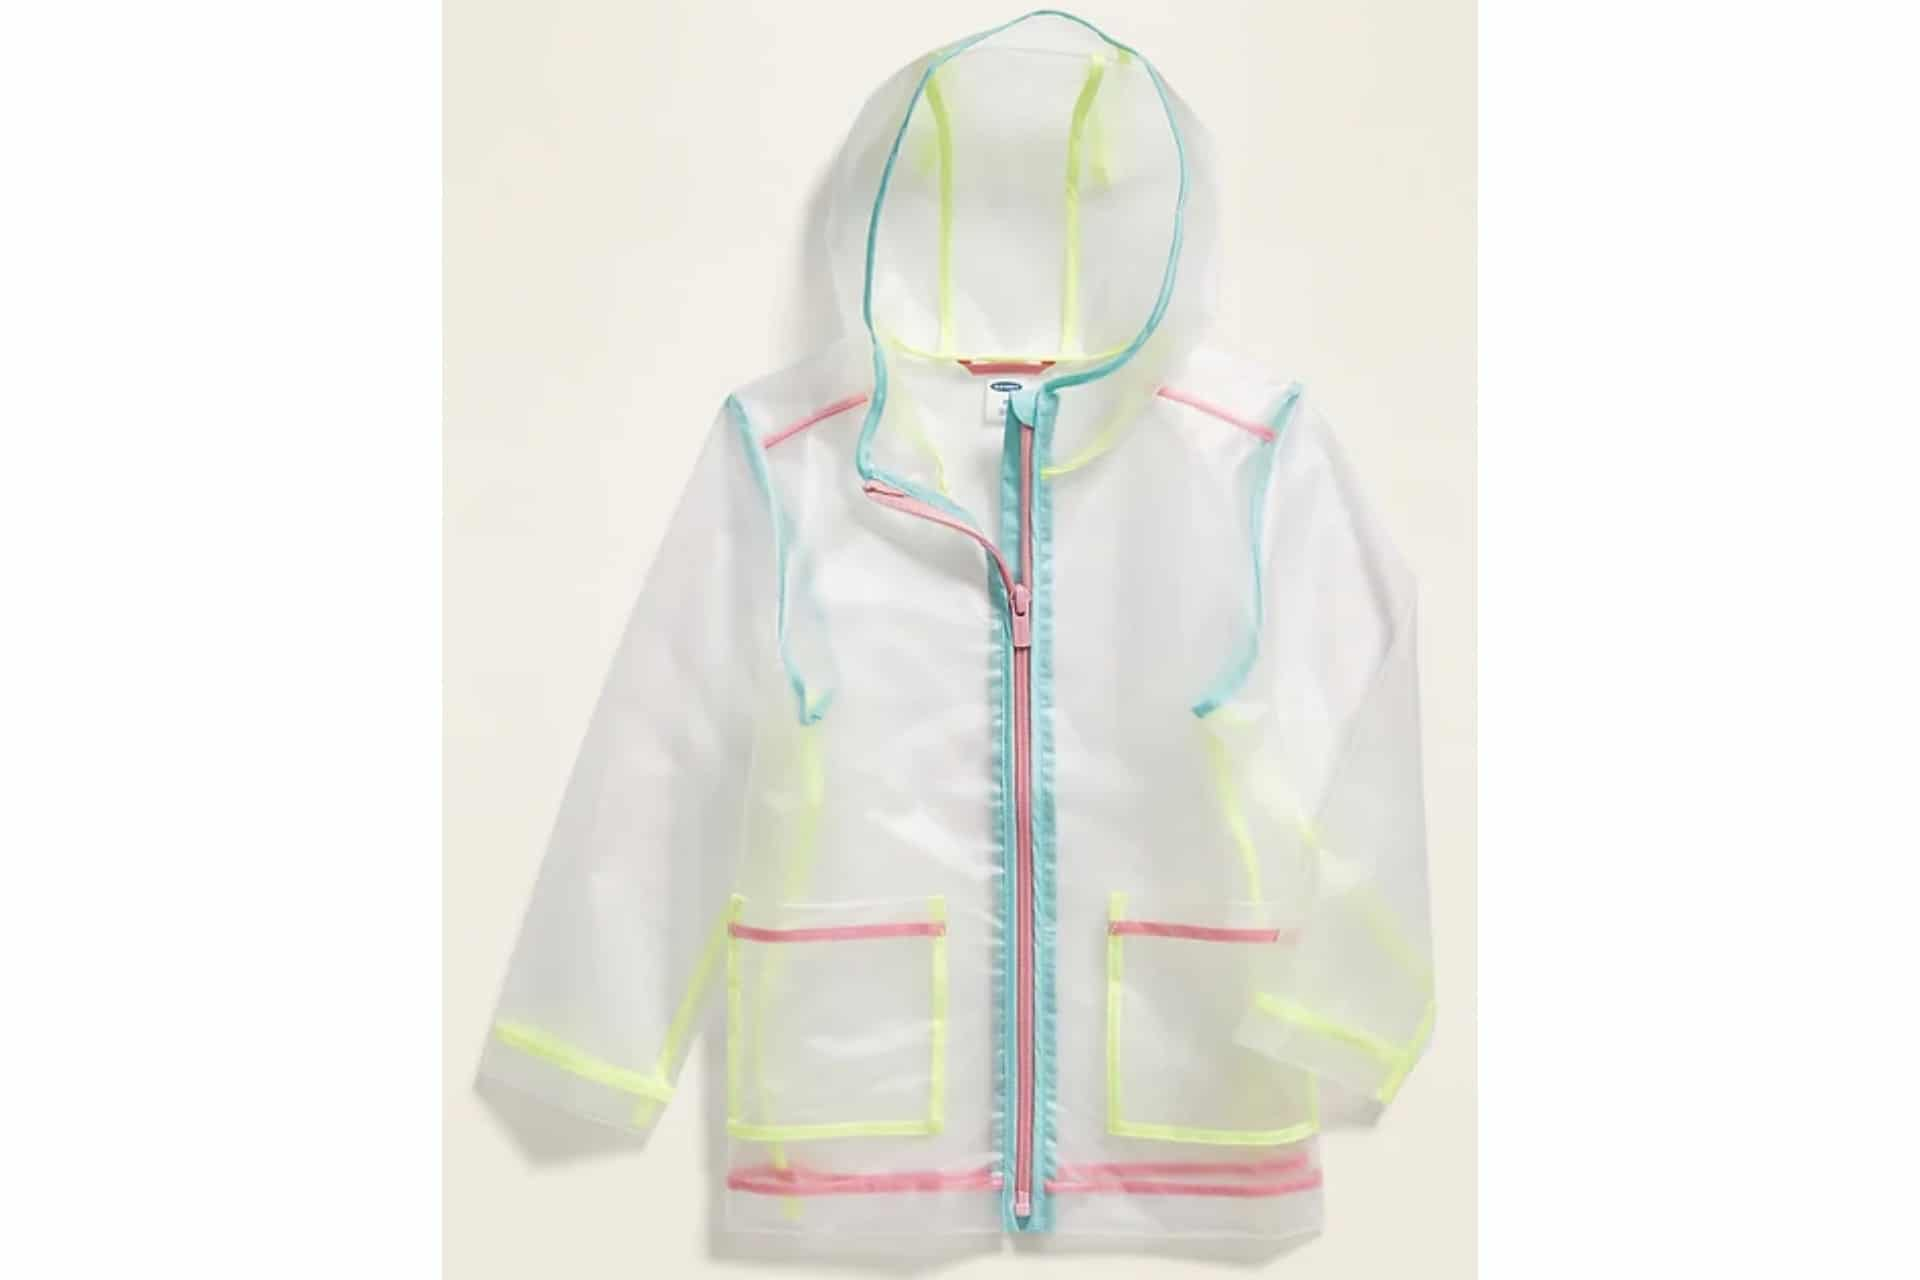 transparent raincoat with neon piping